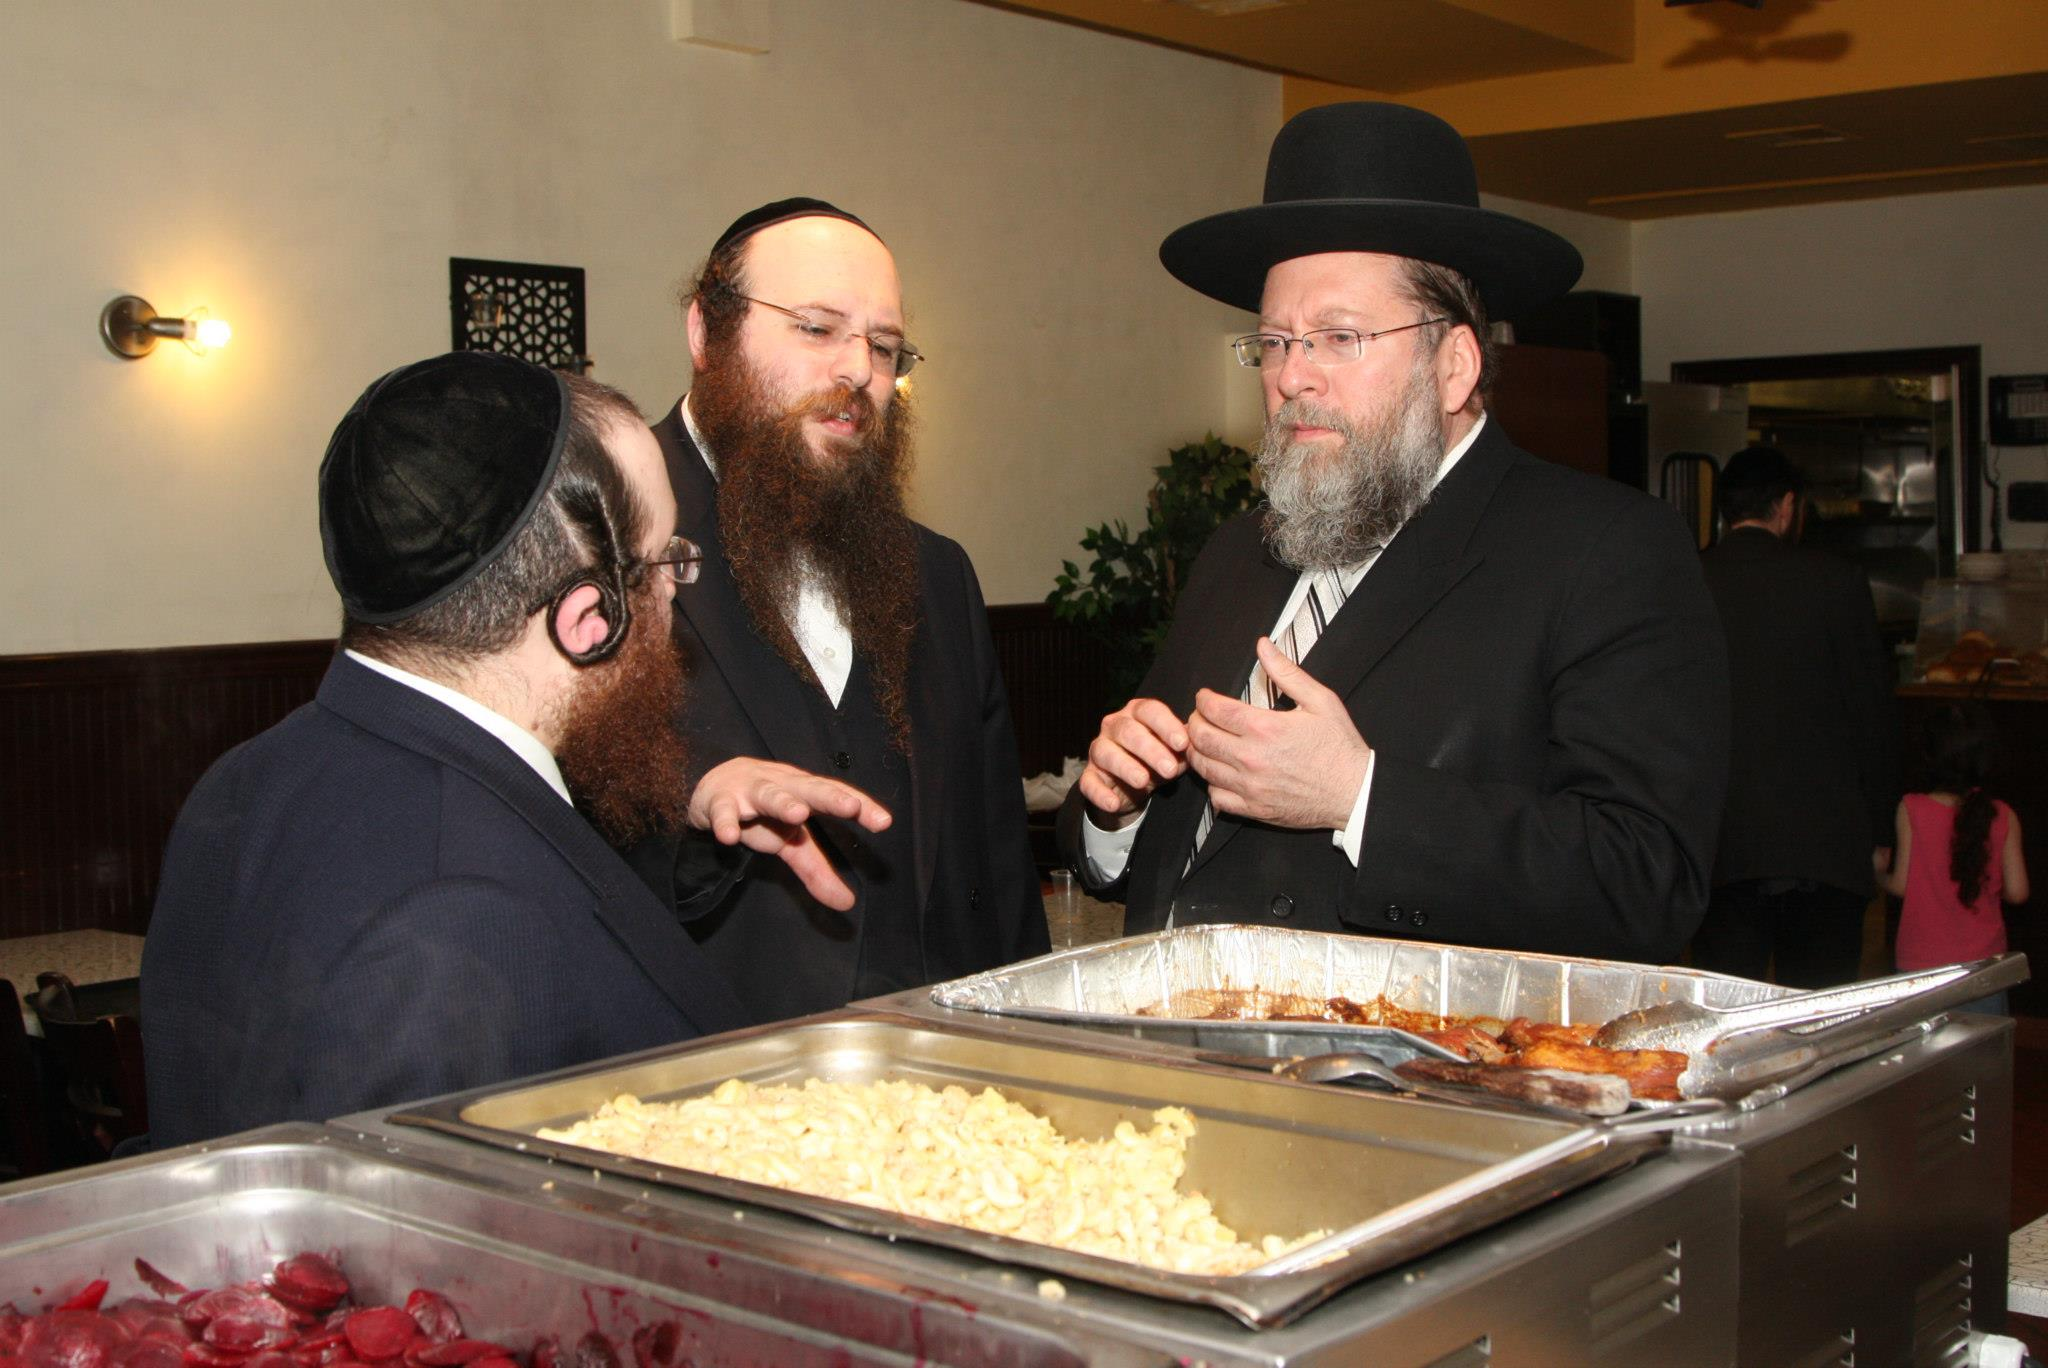 Masbia_Supporter__Rabbi_Moshe_Tuvia_Lieff_of_Agudath_Israel_Bais_Binyamin_Visiting_Masbia_of_Flatbush.jpg